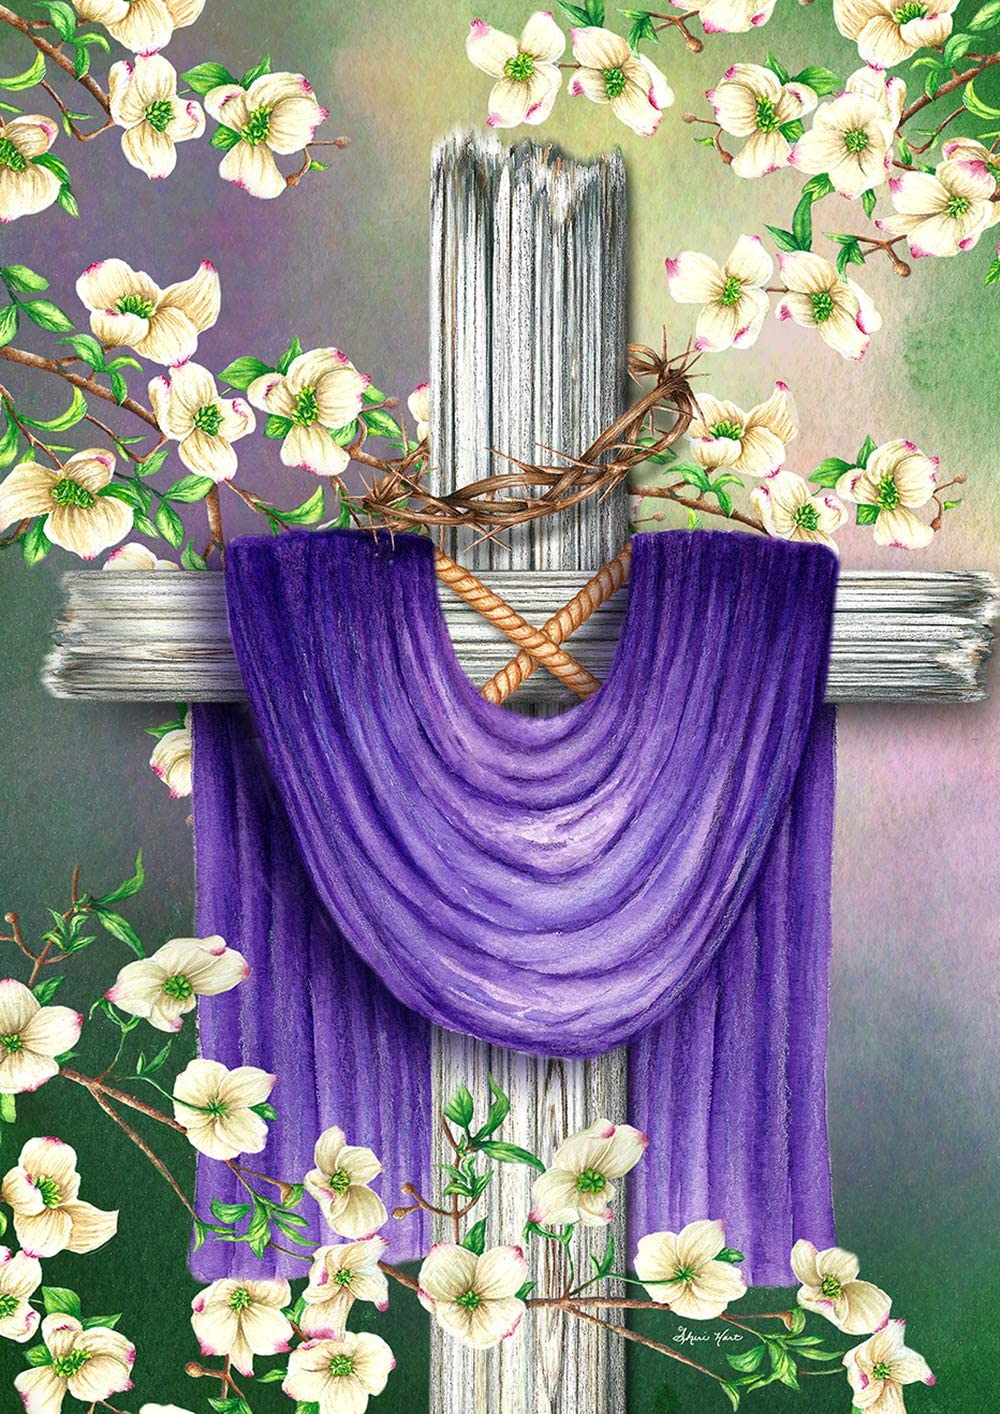 Toland Home Garden 1012324 Easter Cross 28 x 40 Inch Decorative, House Flag